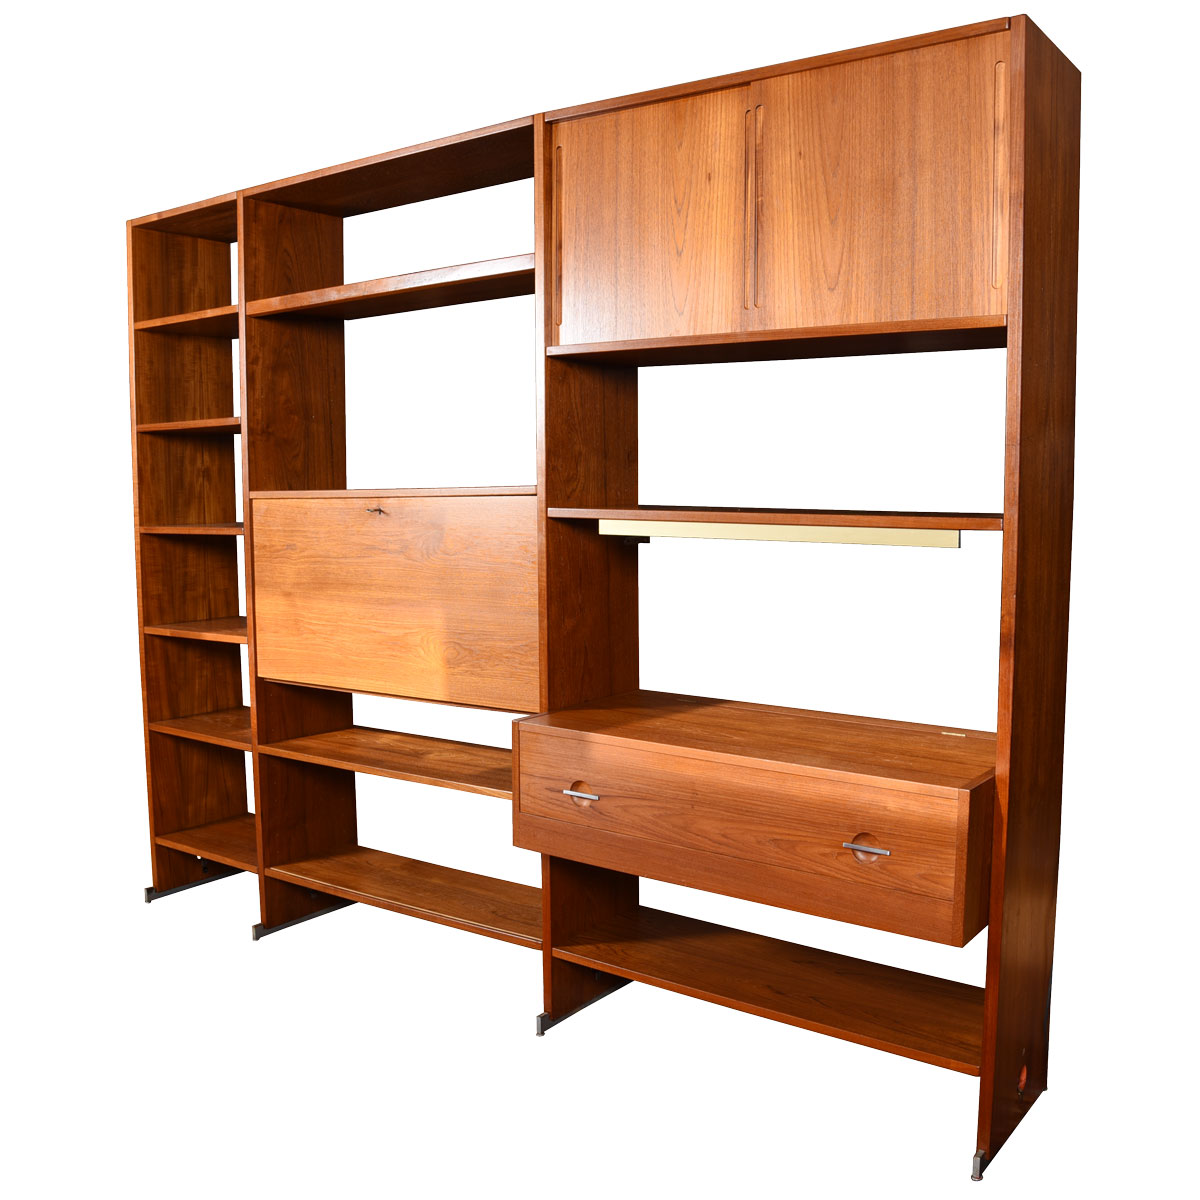 Danish Teak Adjustable Multi-Column Wall Unit / Room Divider by Hans Wegner for Ry Mobler